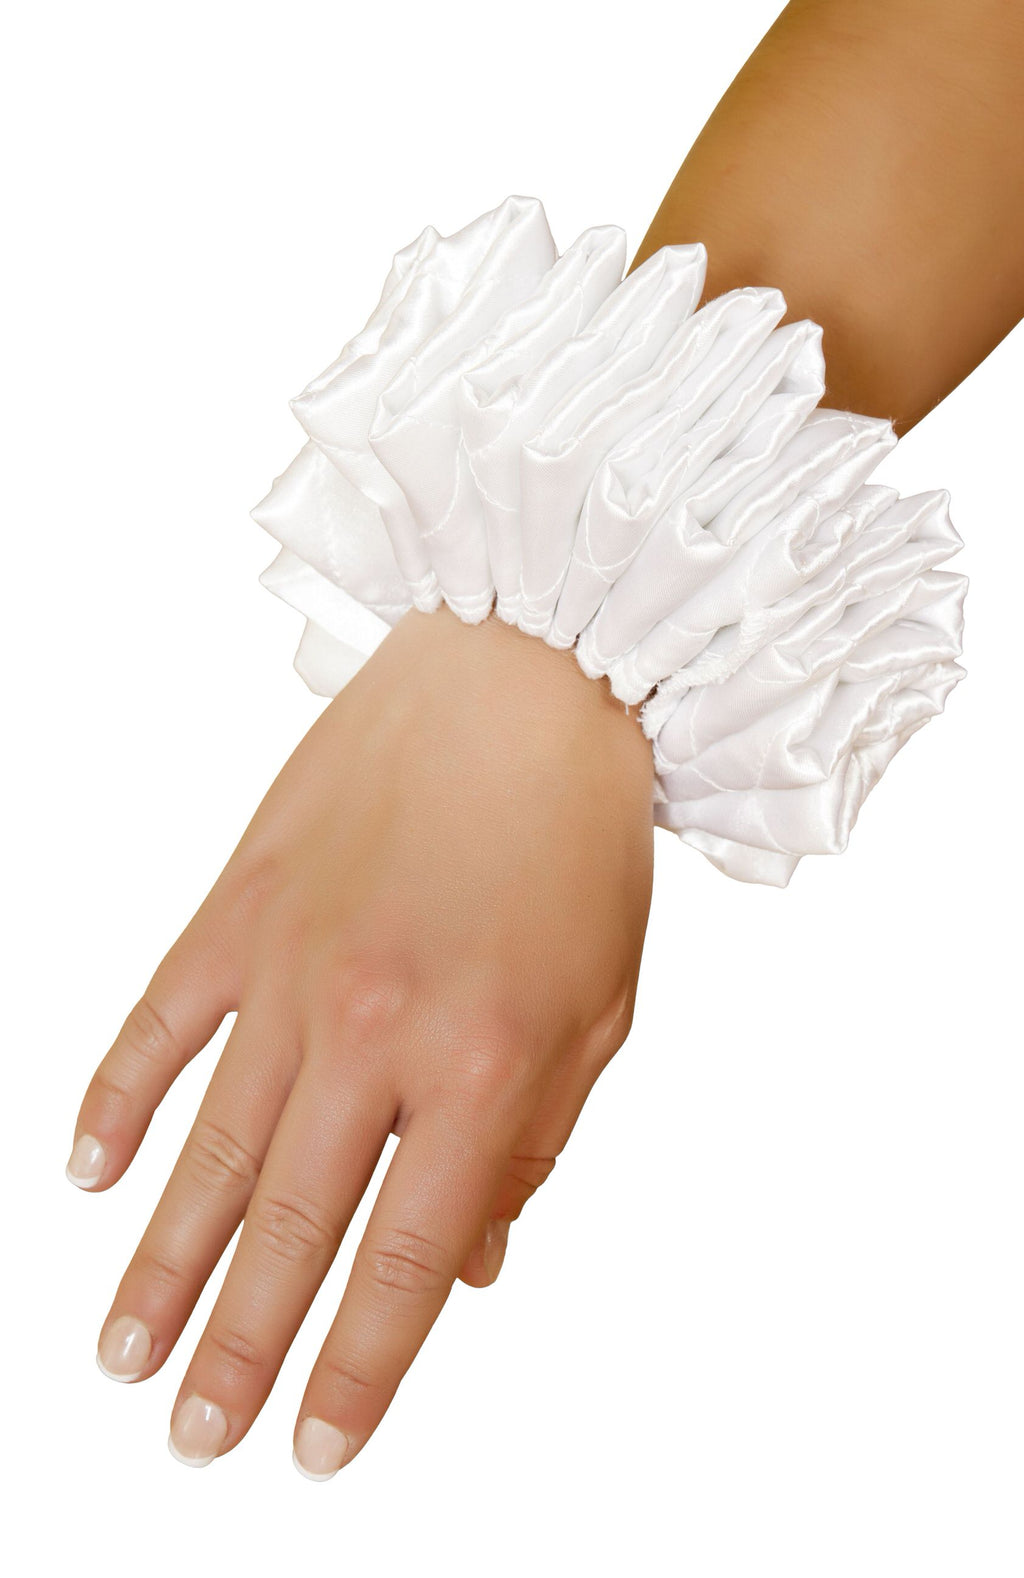 Court-Jester-Clown-Ruffled-Wrist-Cuffs-Costume-Accessory